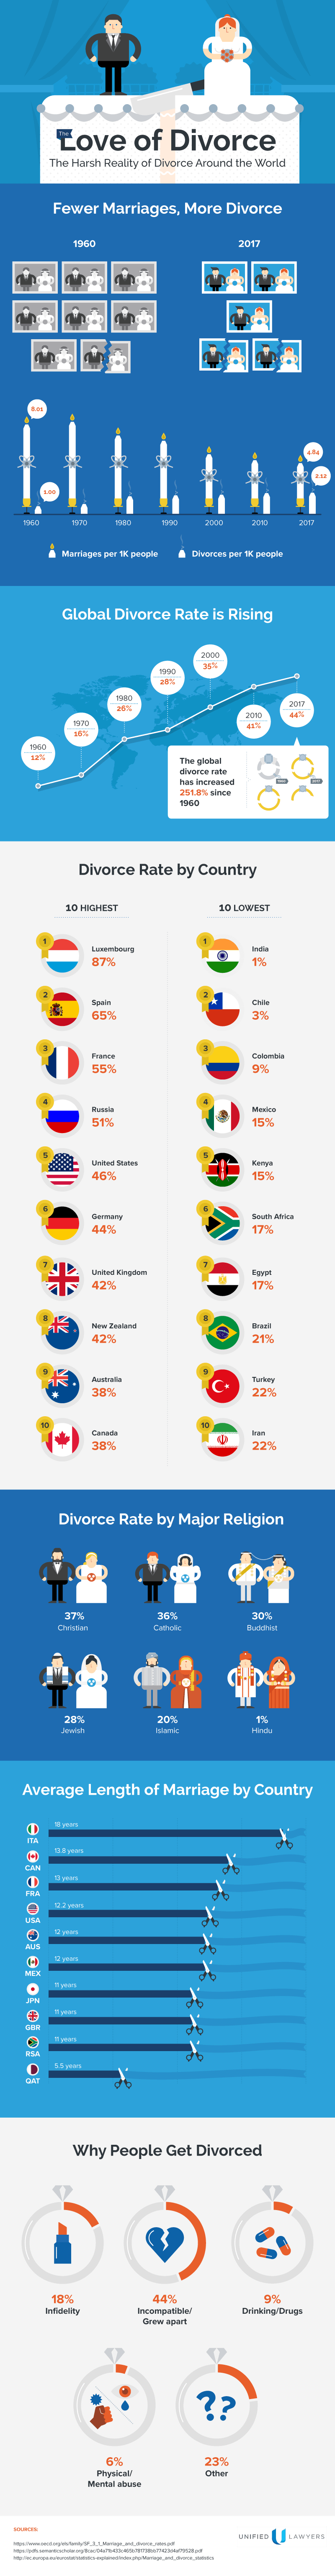 The Love of Divorce: Divorce Rates Around The Globe